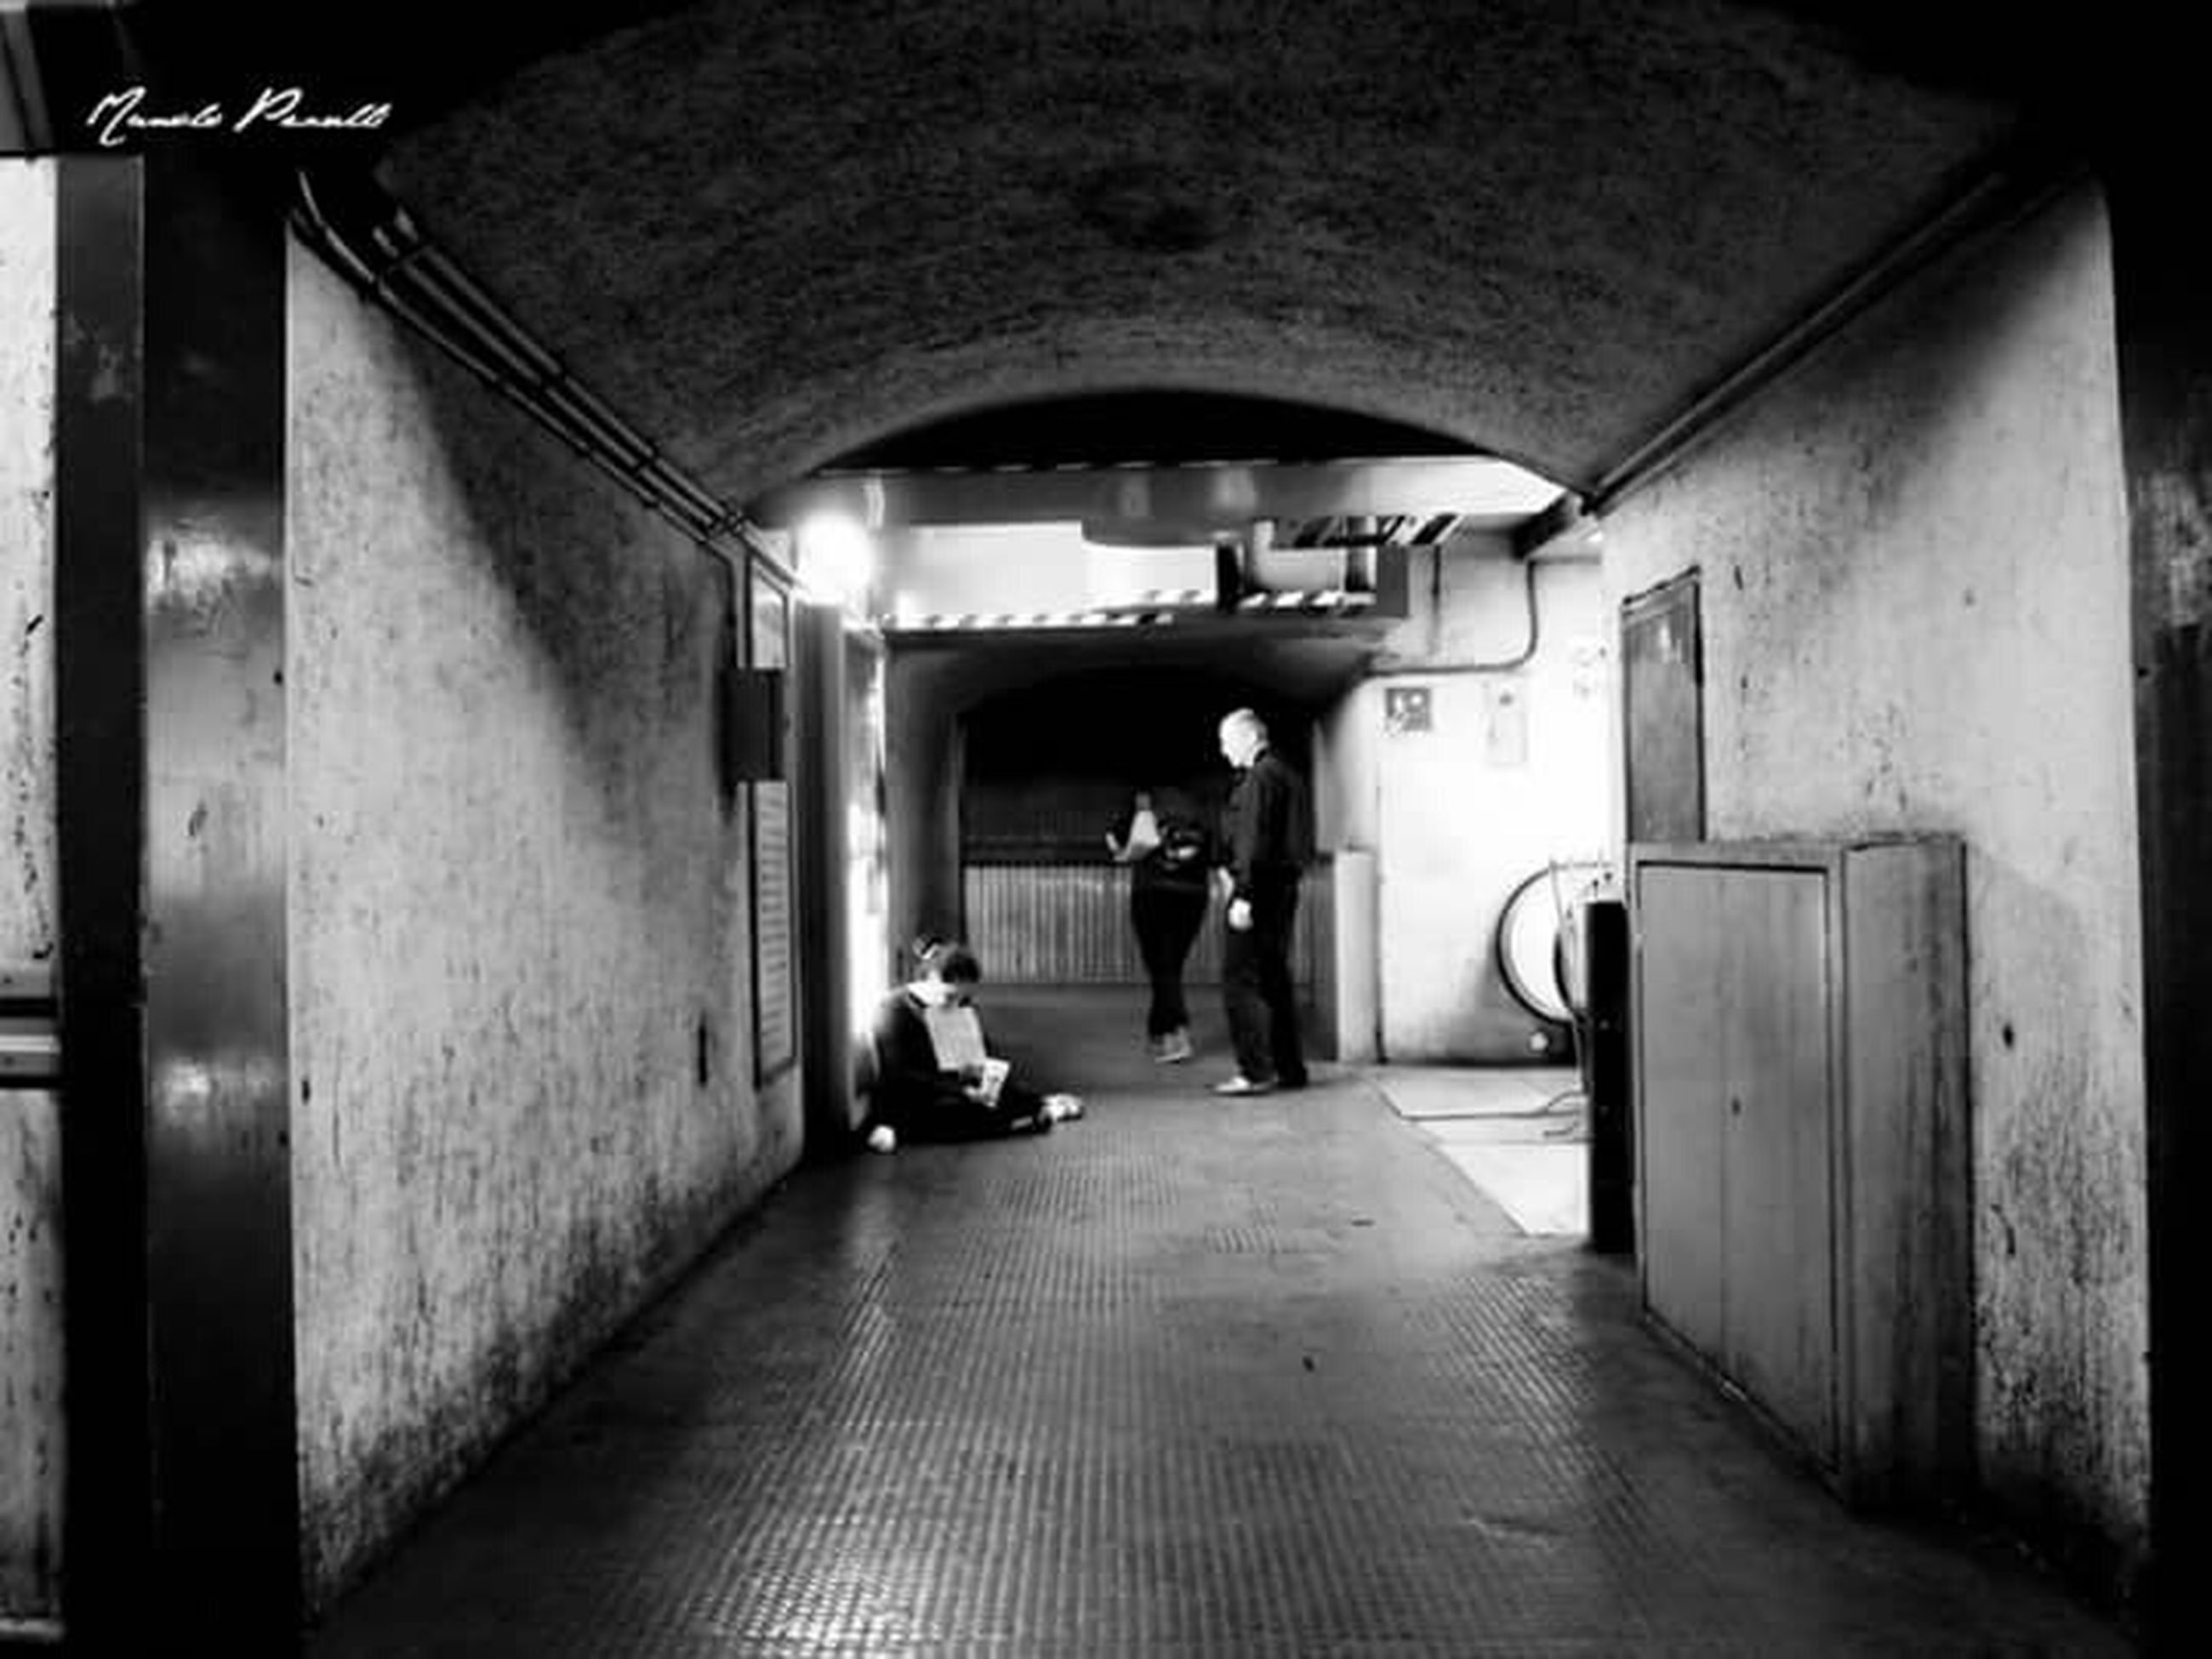 indoors, the way forward, architecture, men, arch, walking, rear view, built structure, full length, tunnel, lifestyles, corridor, diminishing perspective, person, transportation, archway, narrow